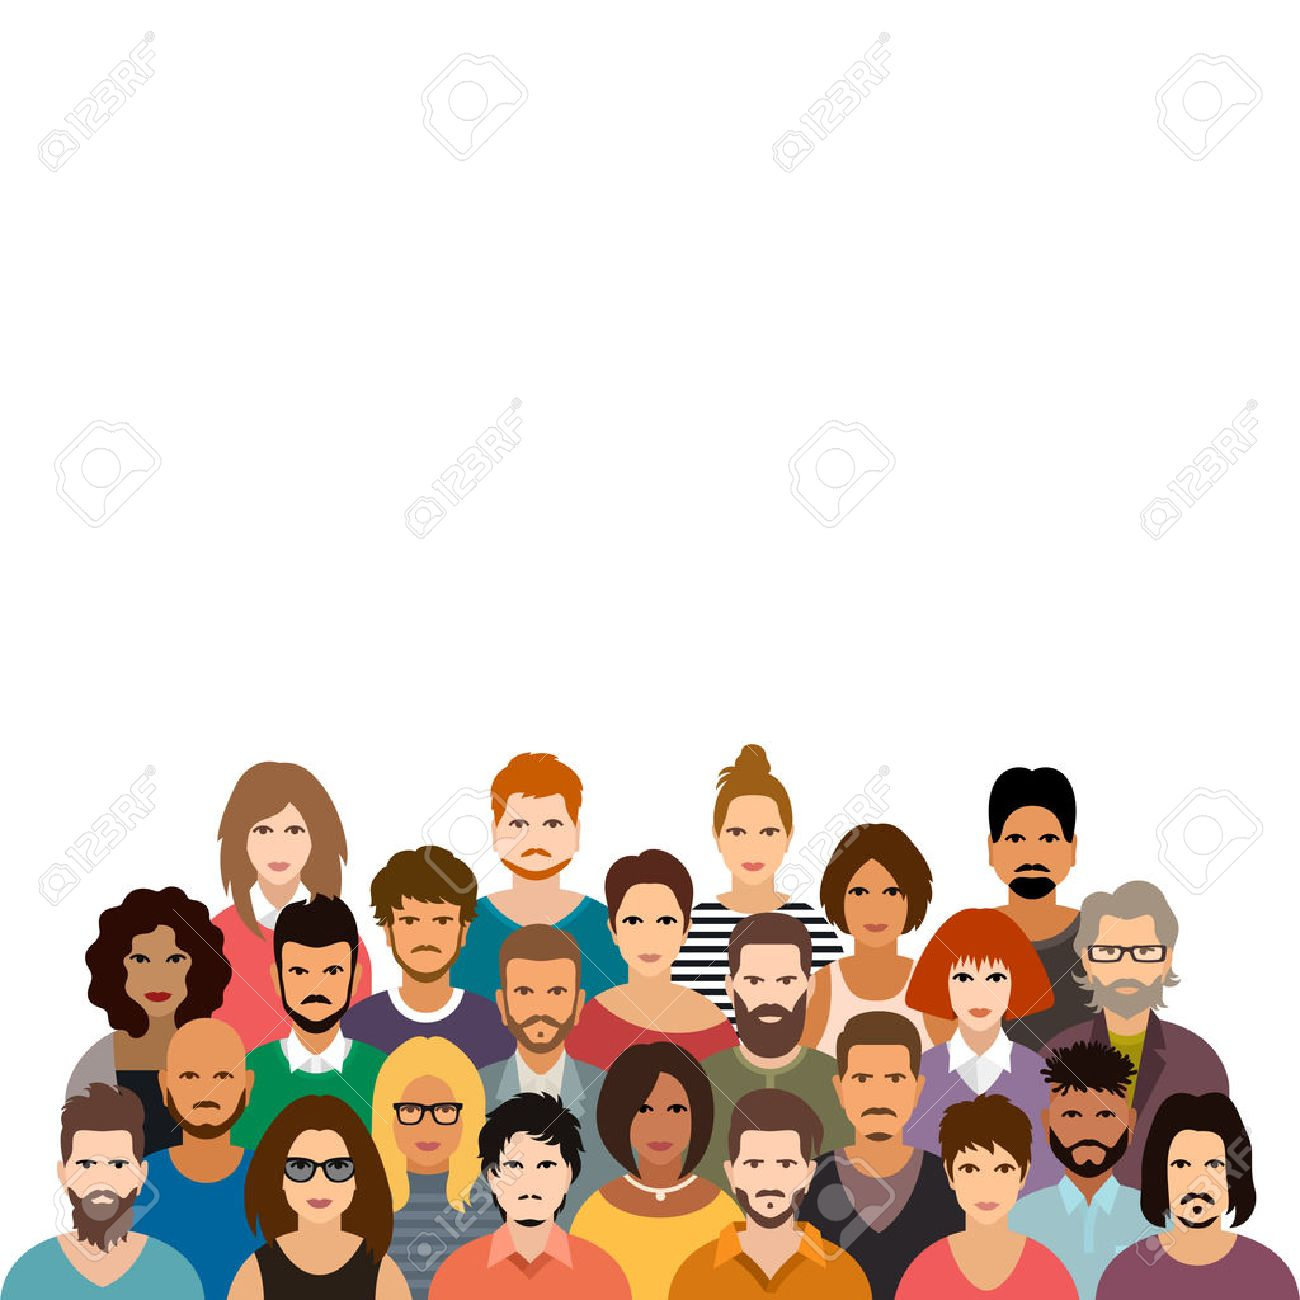 people crowd vector illustration royalty free cliparts vectors and rh 123rf com crown vector free download crown vector free